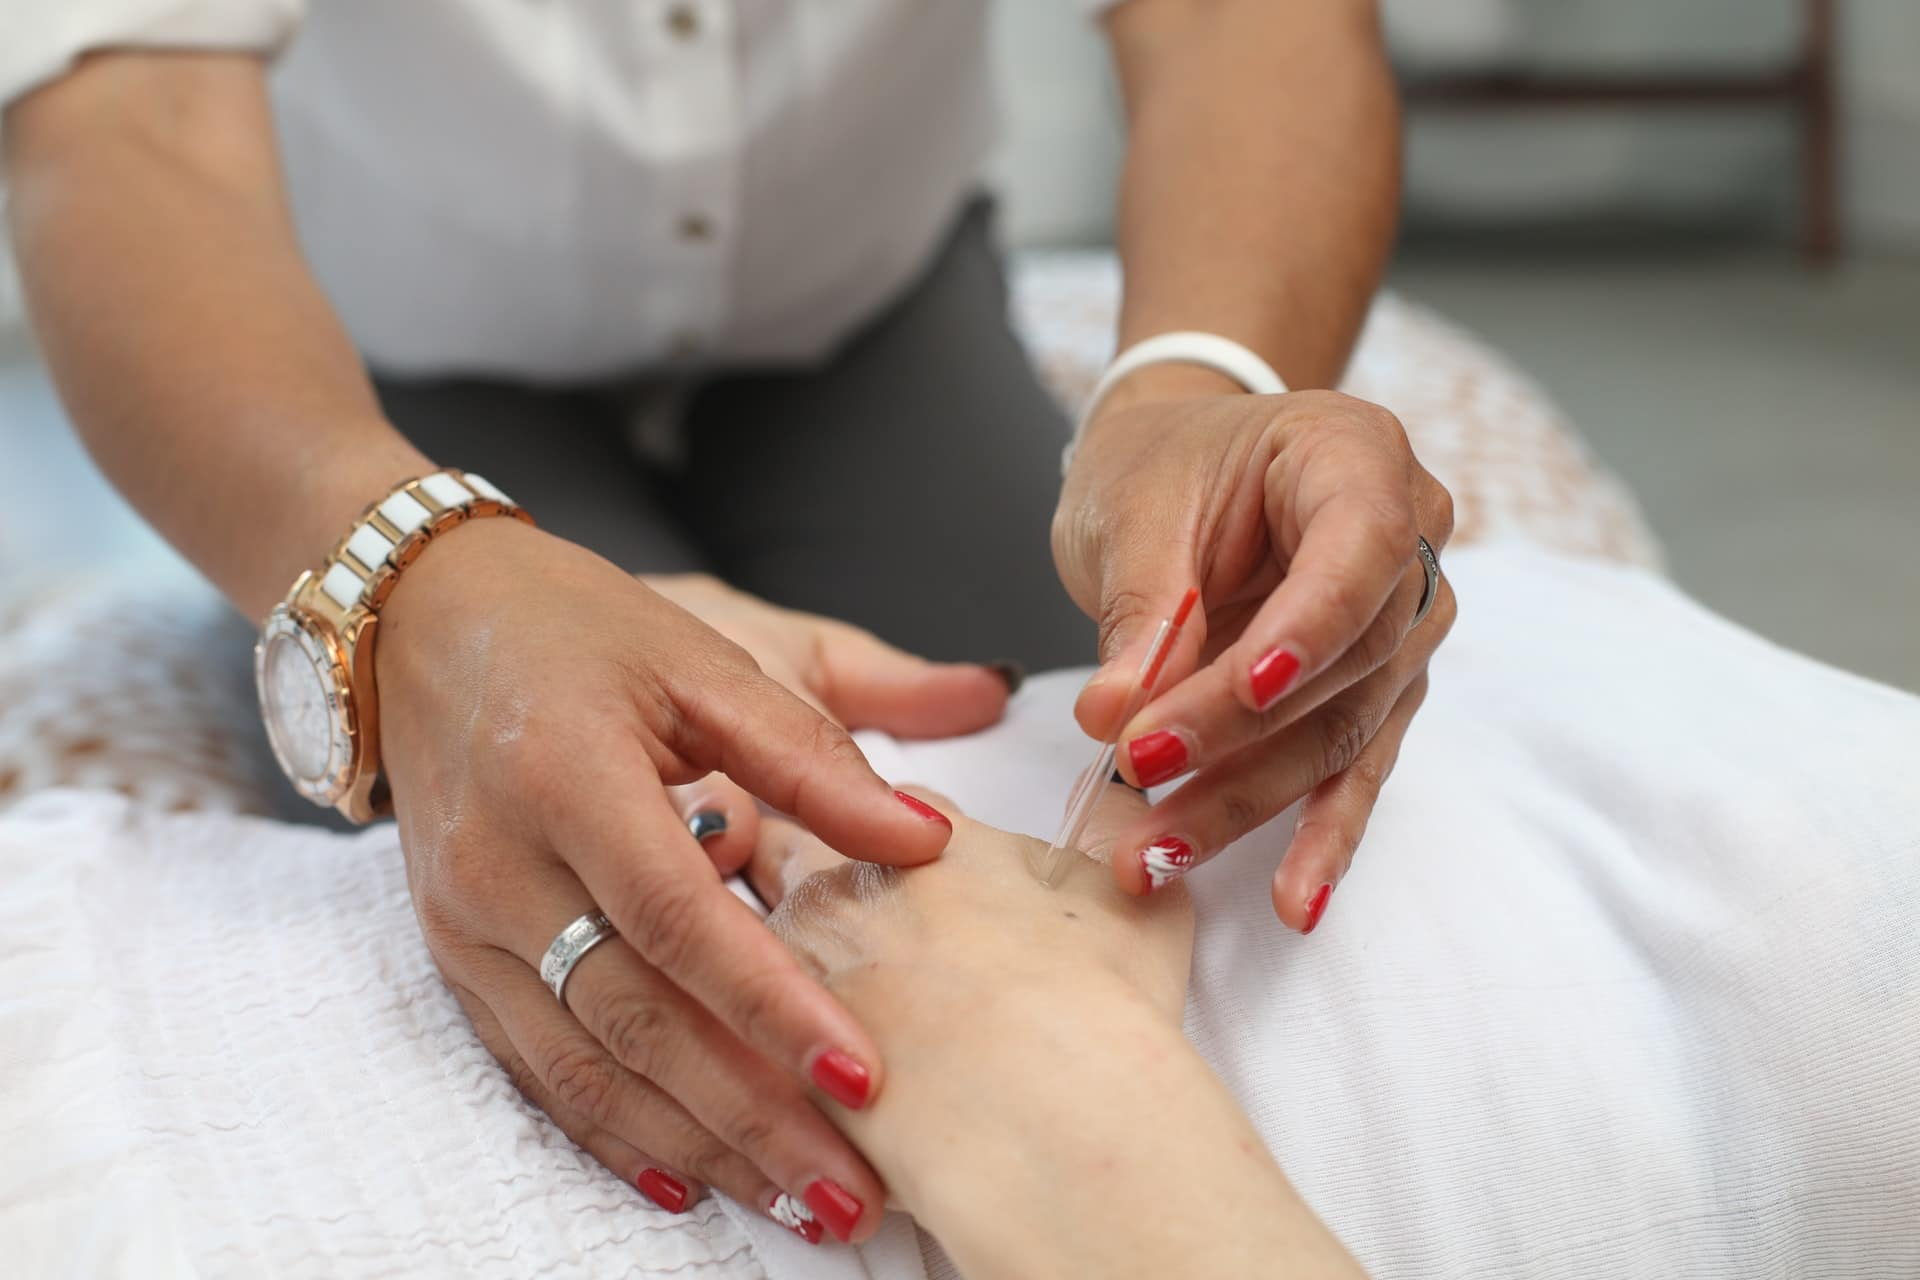 Comparison of dry needling and acupuncture service